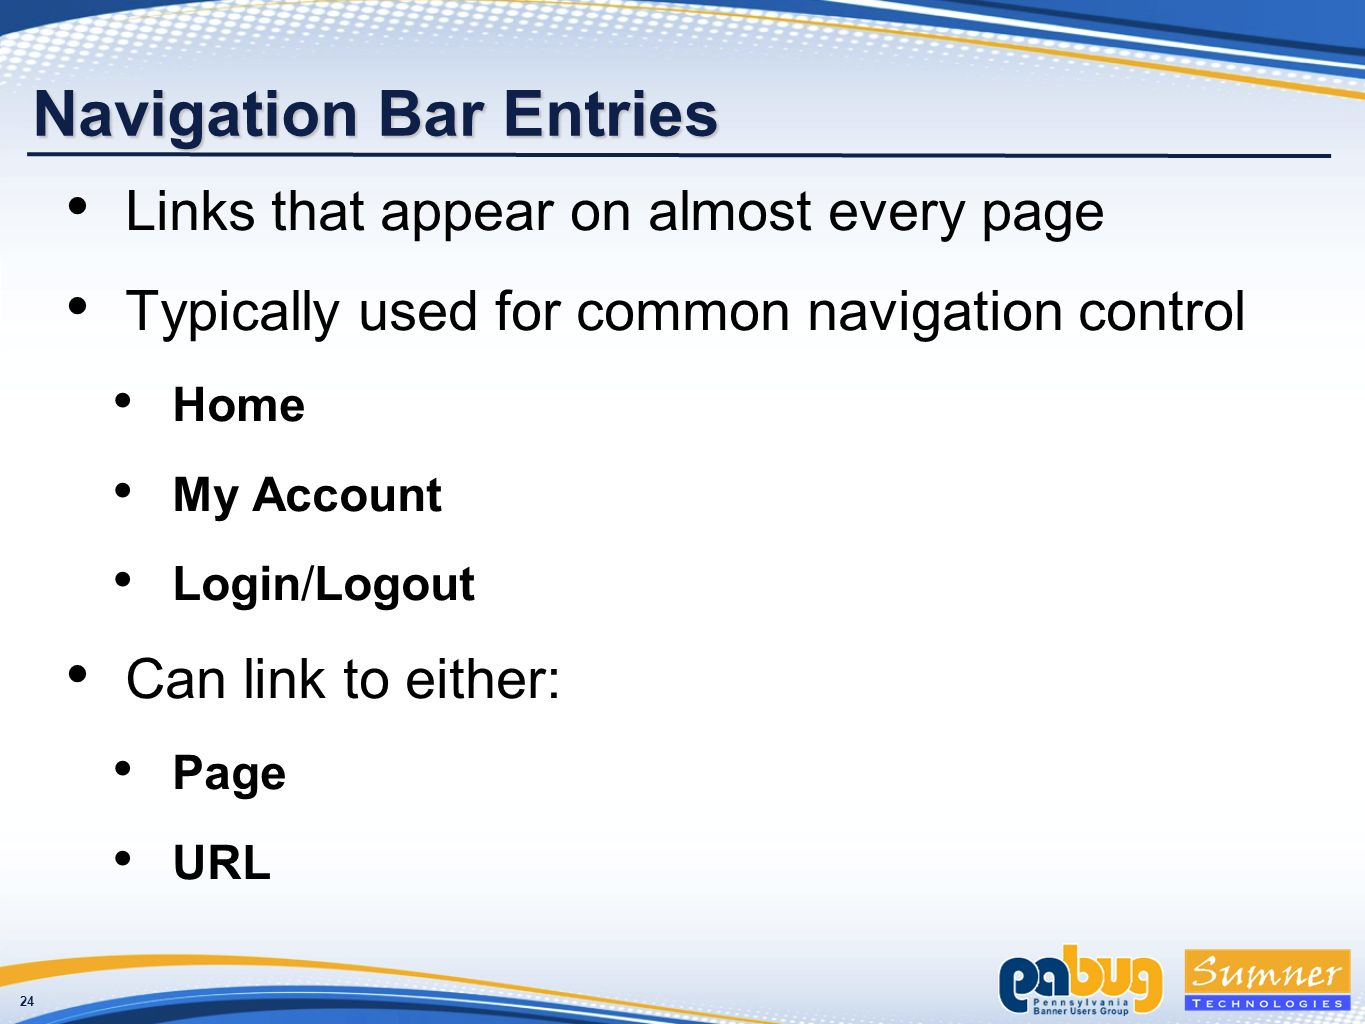 24 Navigation Bar Entries Links that appear on almost every page Typically used for common navigation control Home My Account Login/Logout Can link to either: Page URL